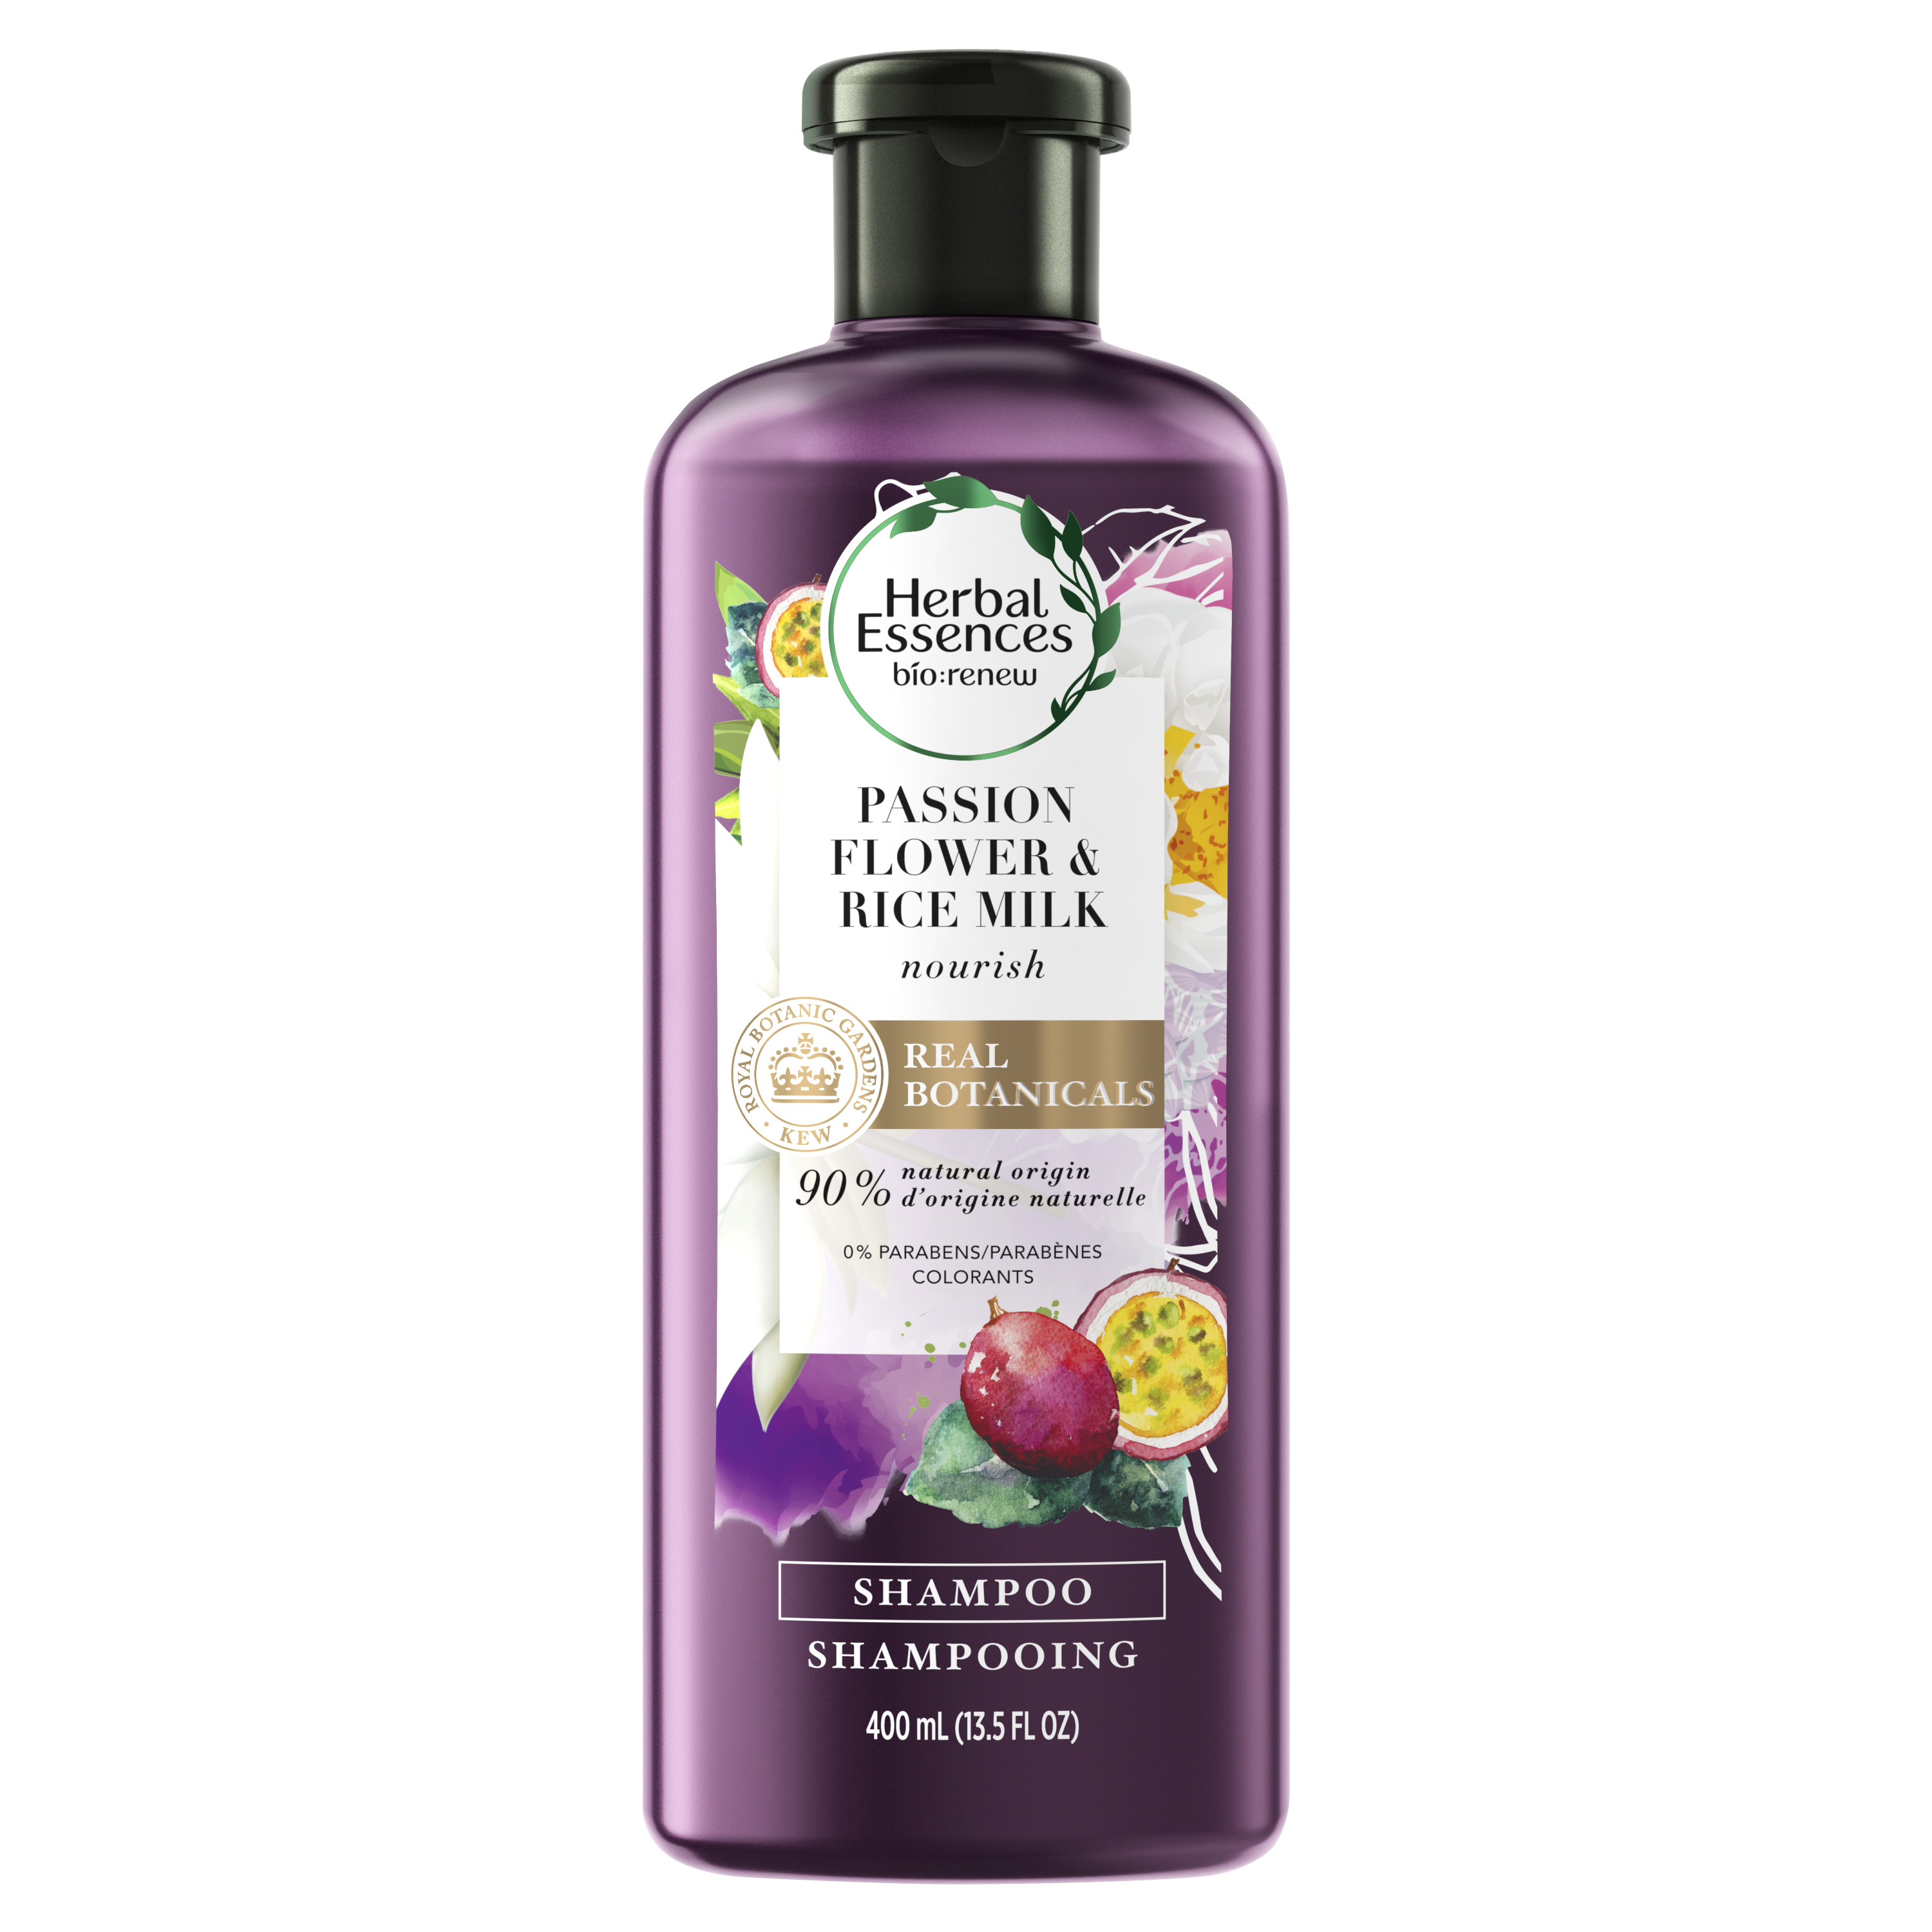 Herbal Essences bio:renew Passion Flower & Rice Milk Nourishing Shampoo, 13.5 fl oz